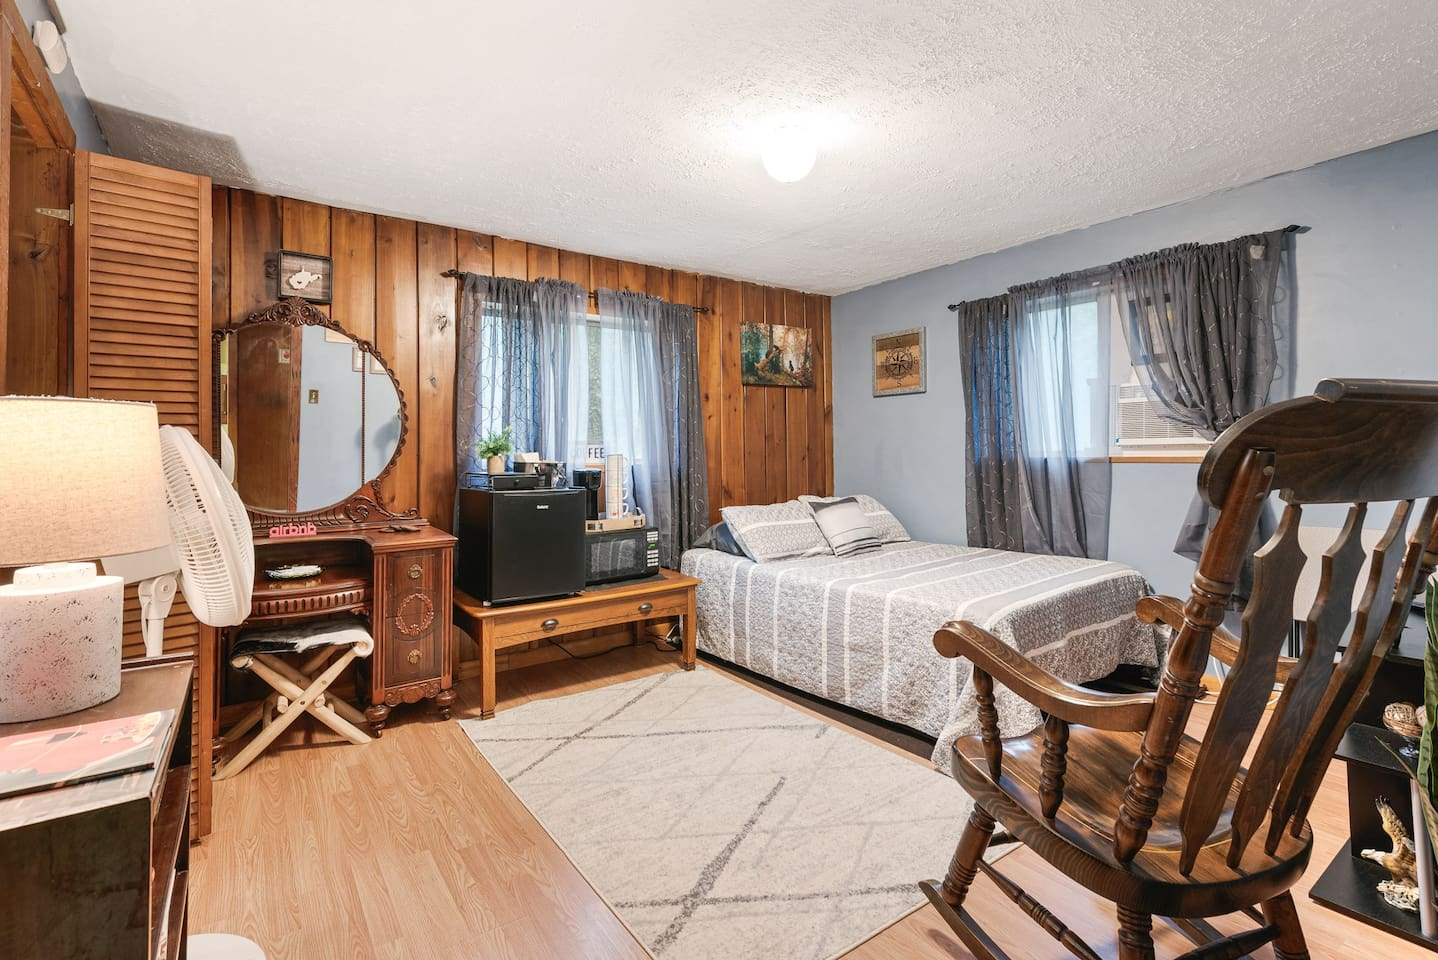 Relax in this cozy mountainside bedroom!   Great location for outdoor activities like rafting, hiking, rock climbing, zip lining, and sight seeing.   To take a spin around the room in 3D visit the link below: https://kuula.co/post/7qWL5